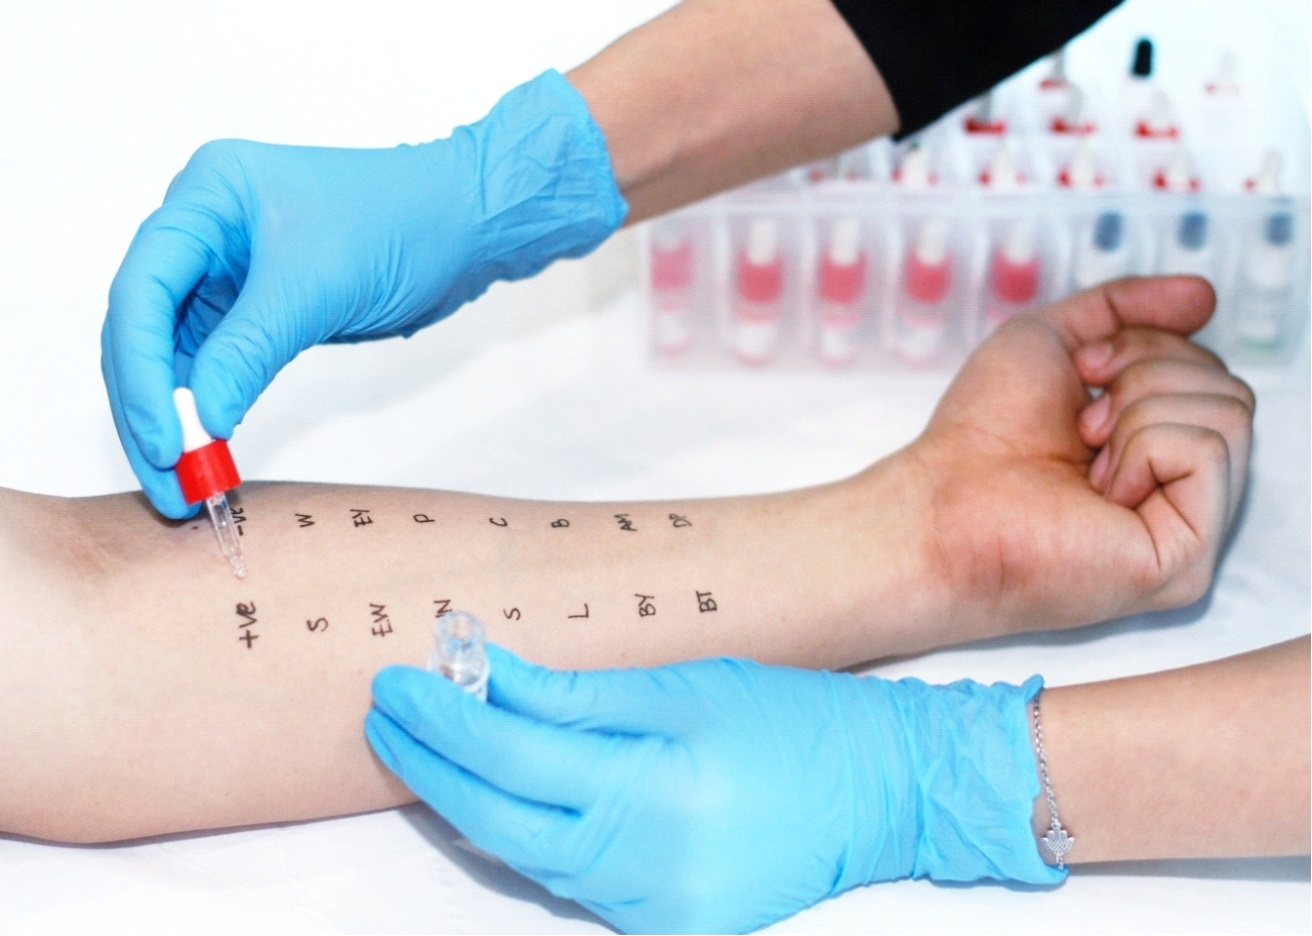 Picture of a doctor dropping an allergen on patient's arm